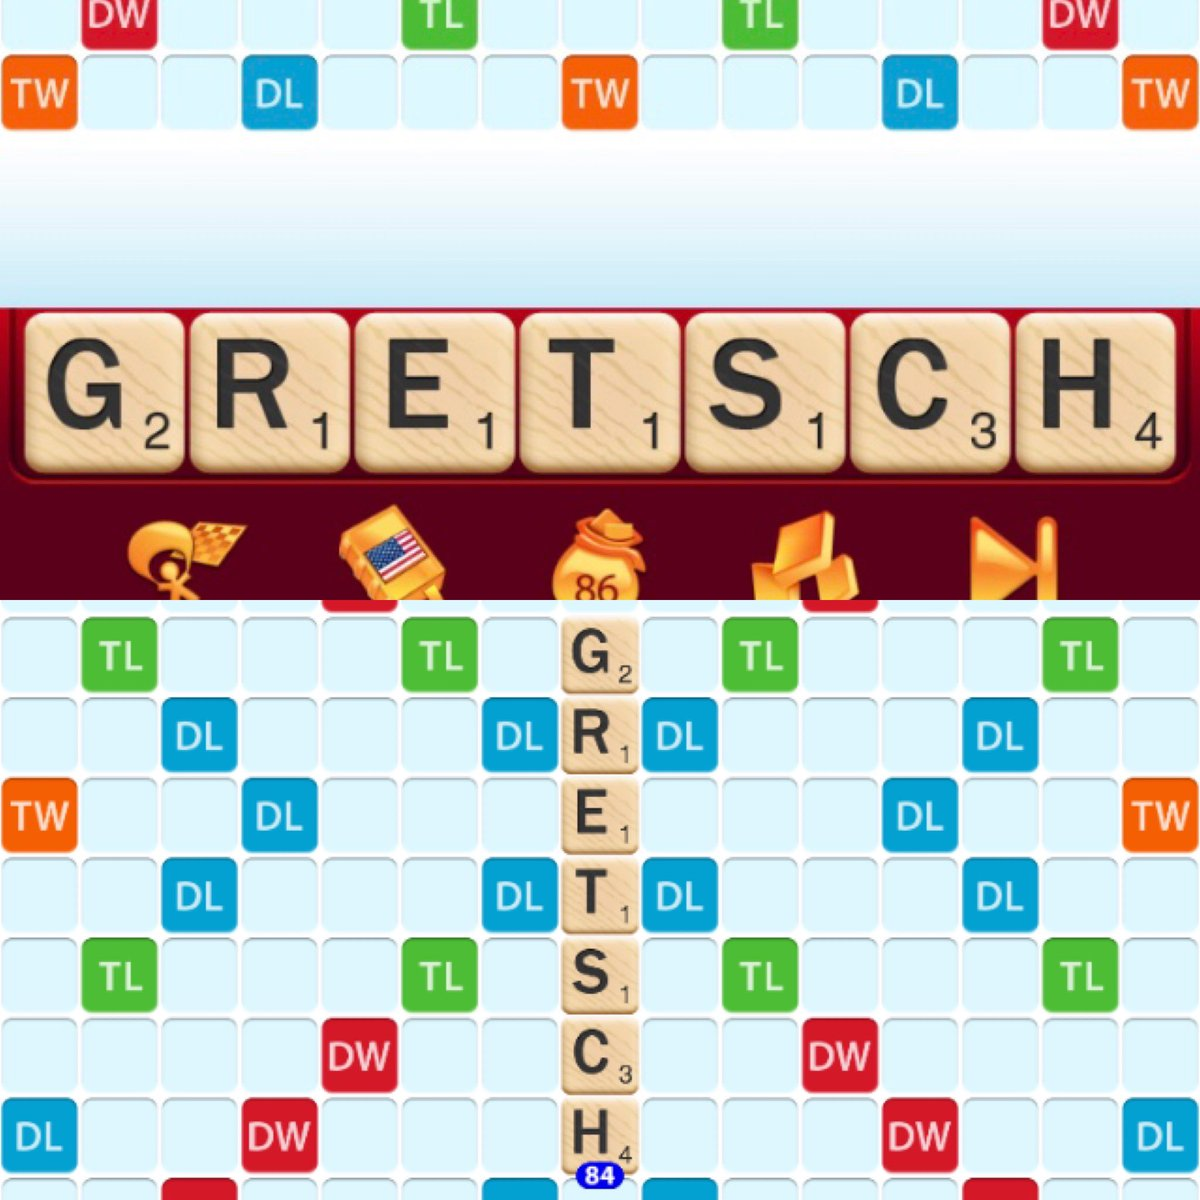 I play Scrabble on my laptop everyday to stay sharp. What are the odds that it selected these 7 letters? Do you think it's a sign?  #guitar #guitarplayer #rocknroll #music #scrabble #sign #music #destiny #rockismylife #singer #songwriter #musician #gretschpic.twitter.com/T5gxTx3kJX